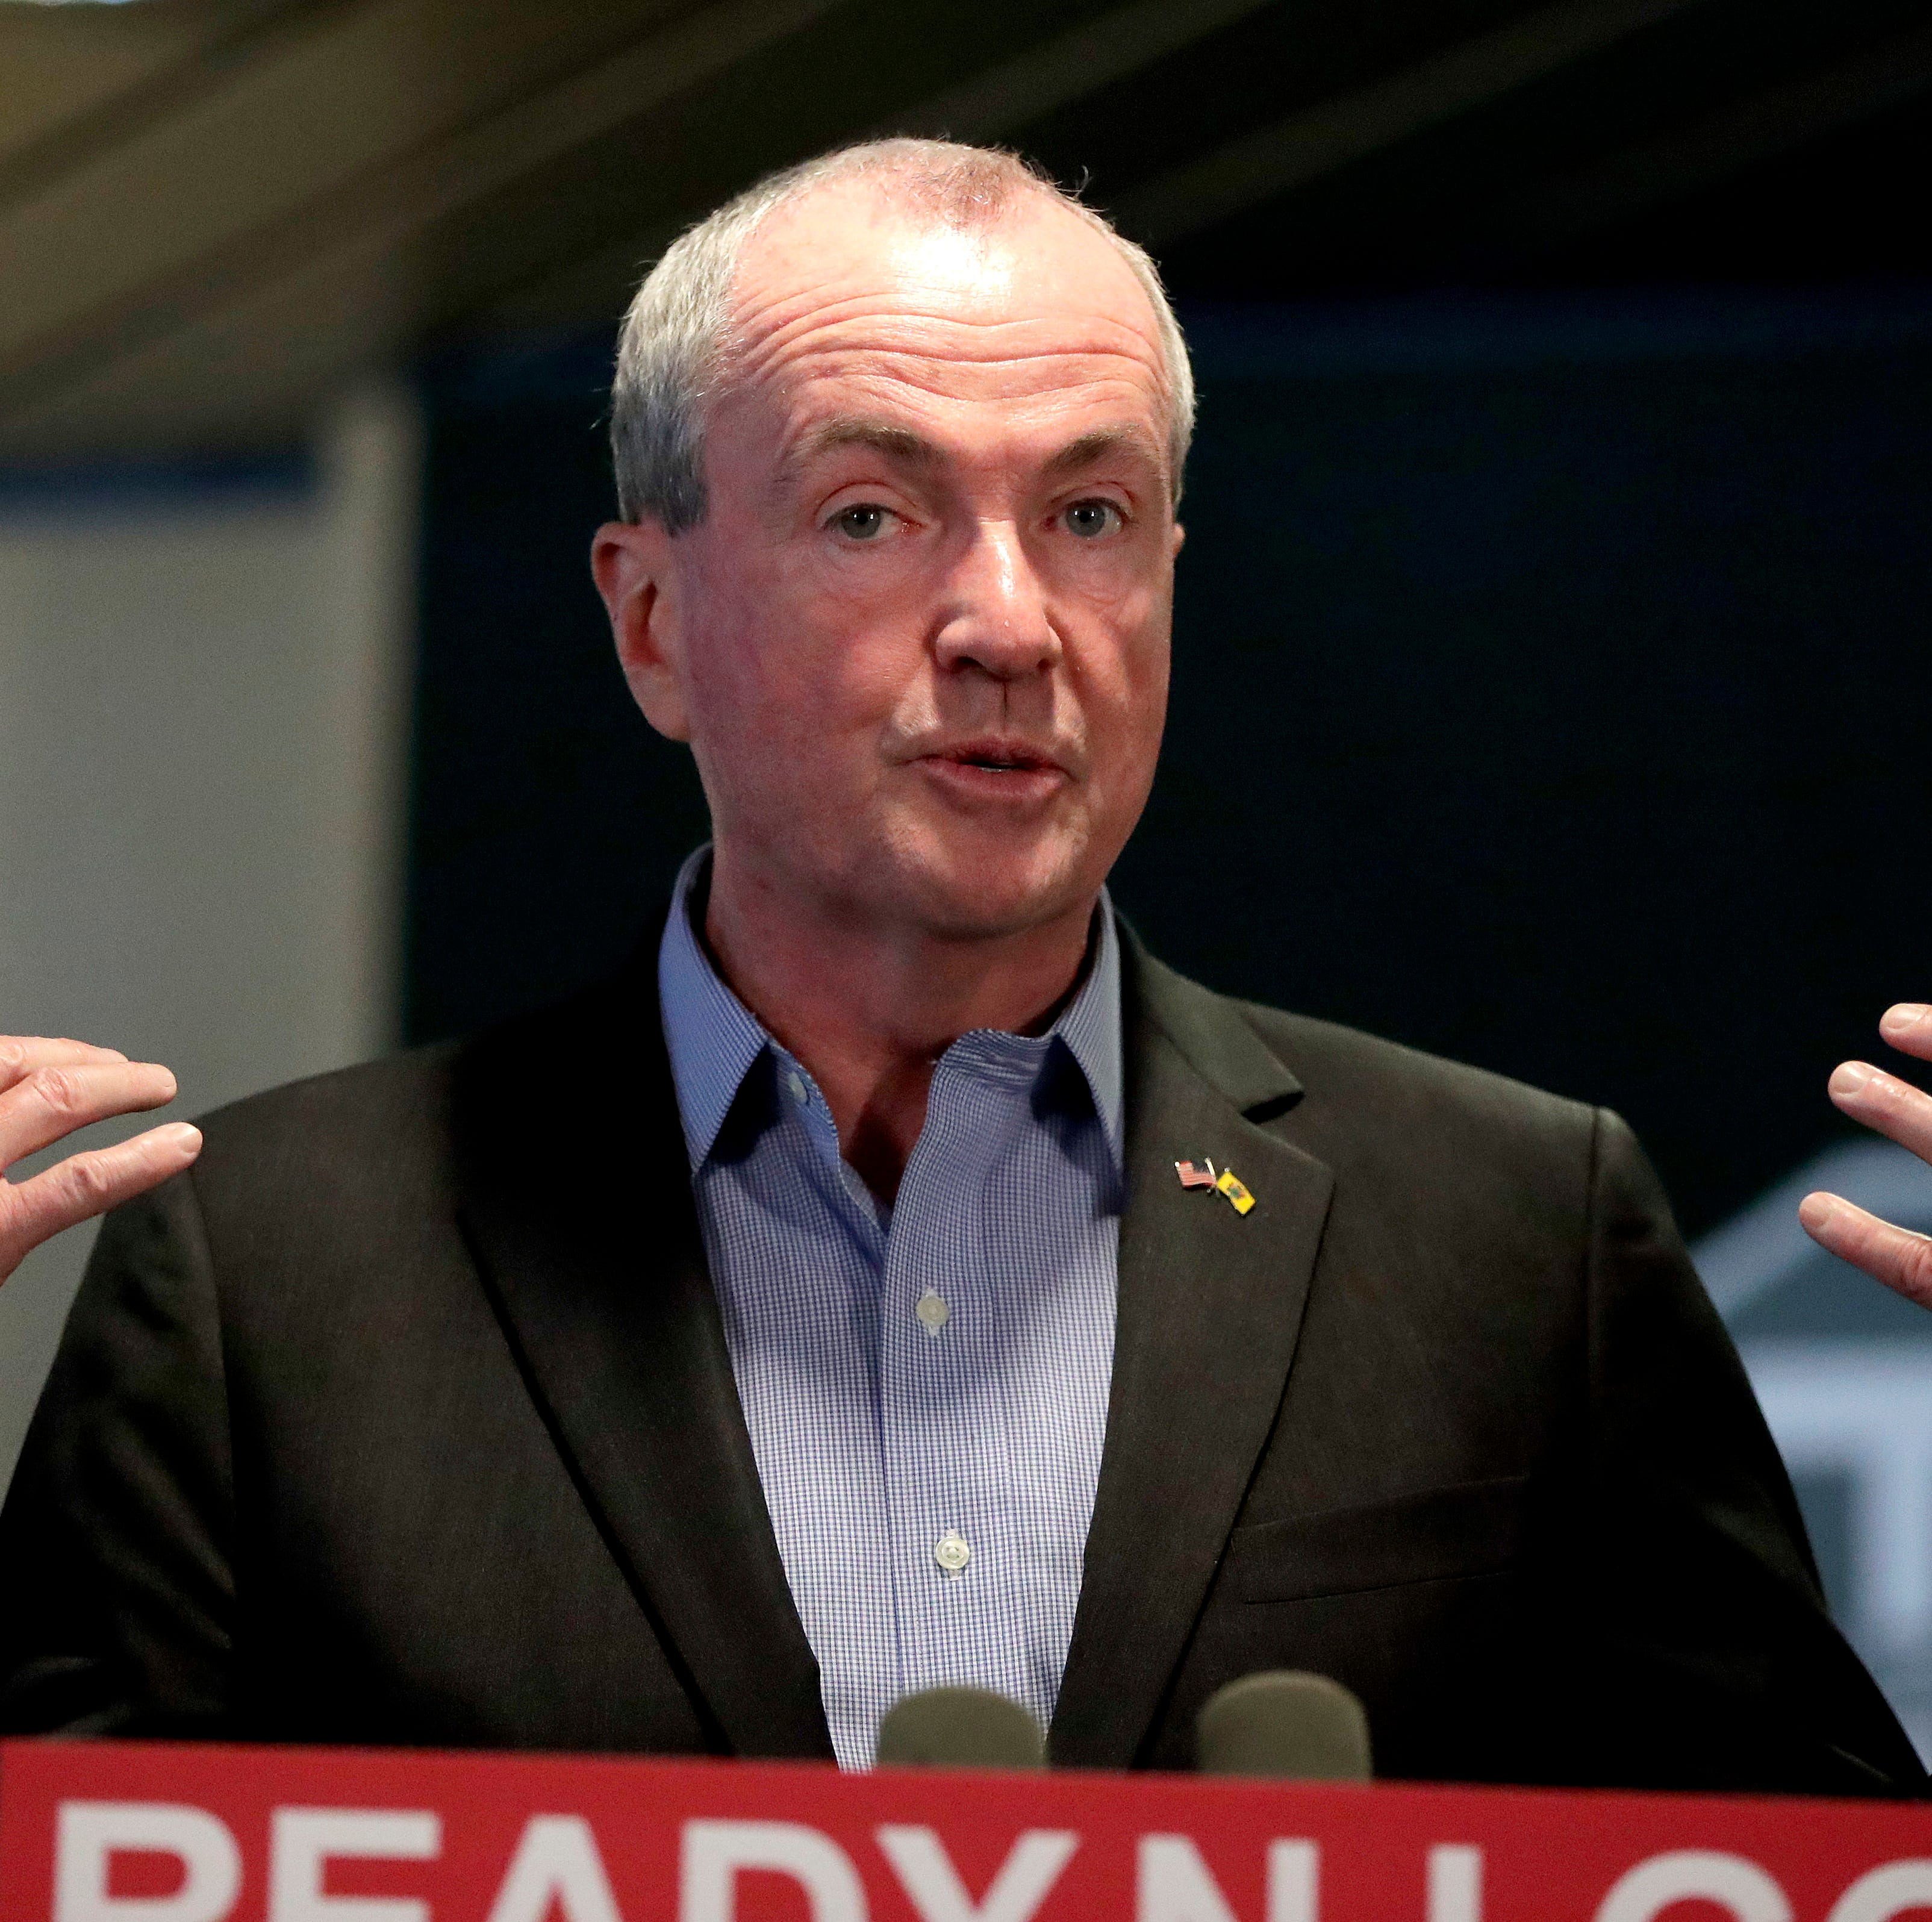 Gov. Phil Murphy offers storm warning, resetting narrative after NJ failed to plow roads